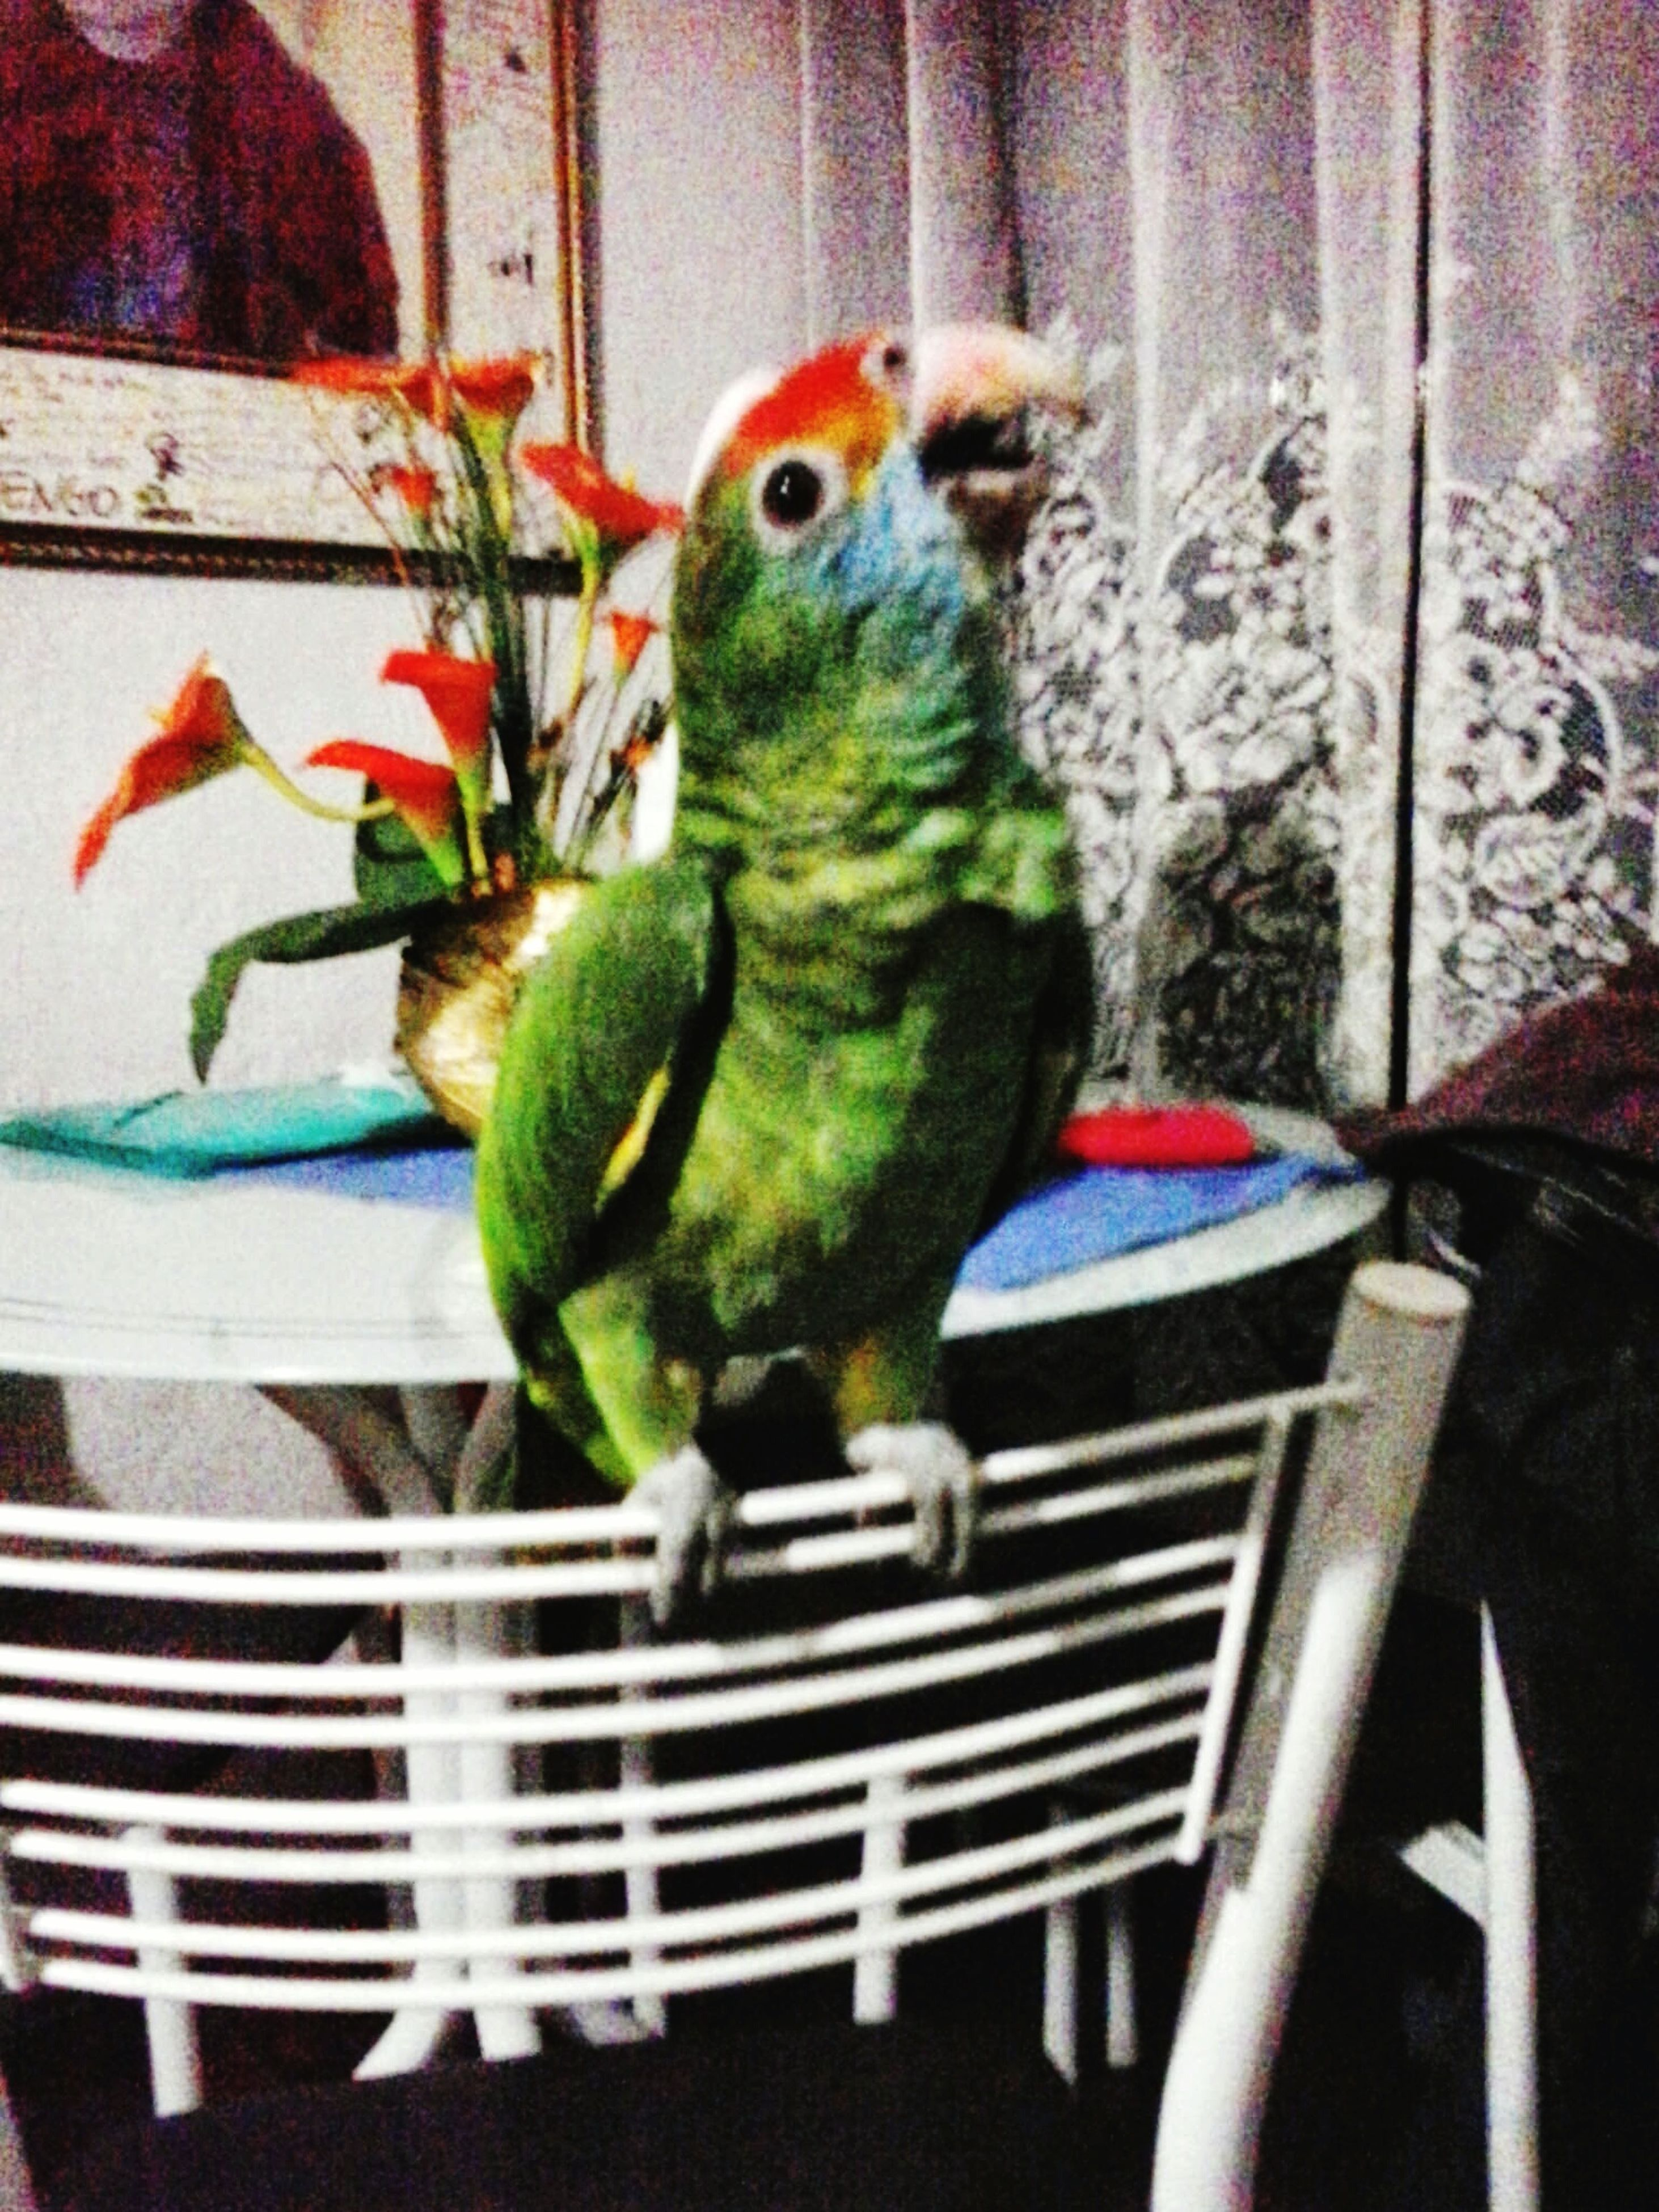 animal themes, bird, one animal, indoors, parrot, potted plant, perching, pets, close-up, plant, wildlife, leaf, cage, animals in the wild, window sill, no people, window, multi colored, wall - building feature, nature